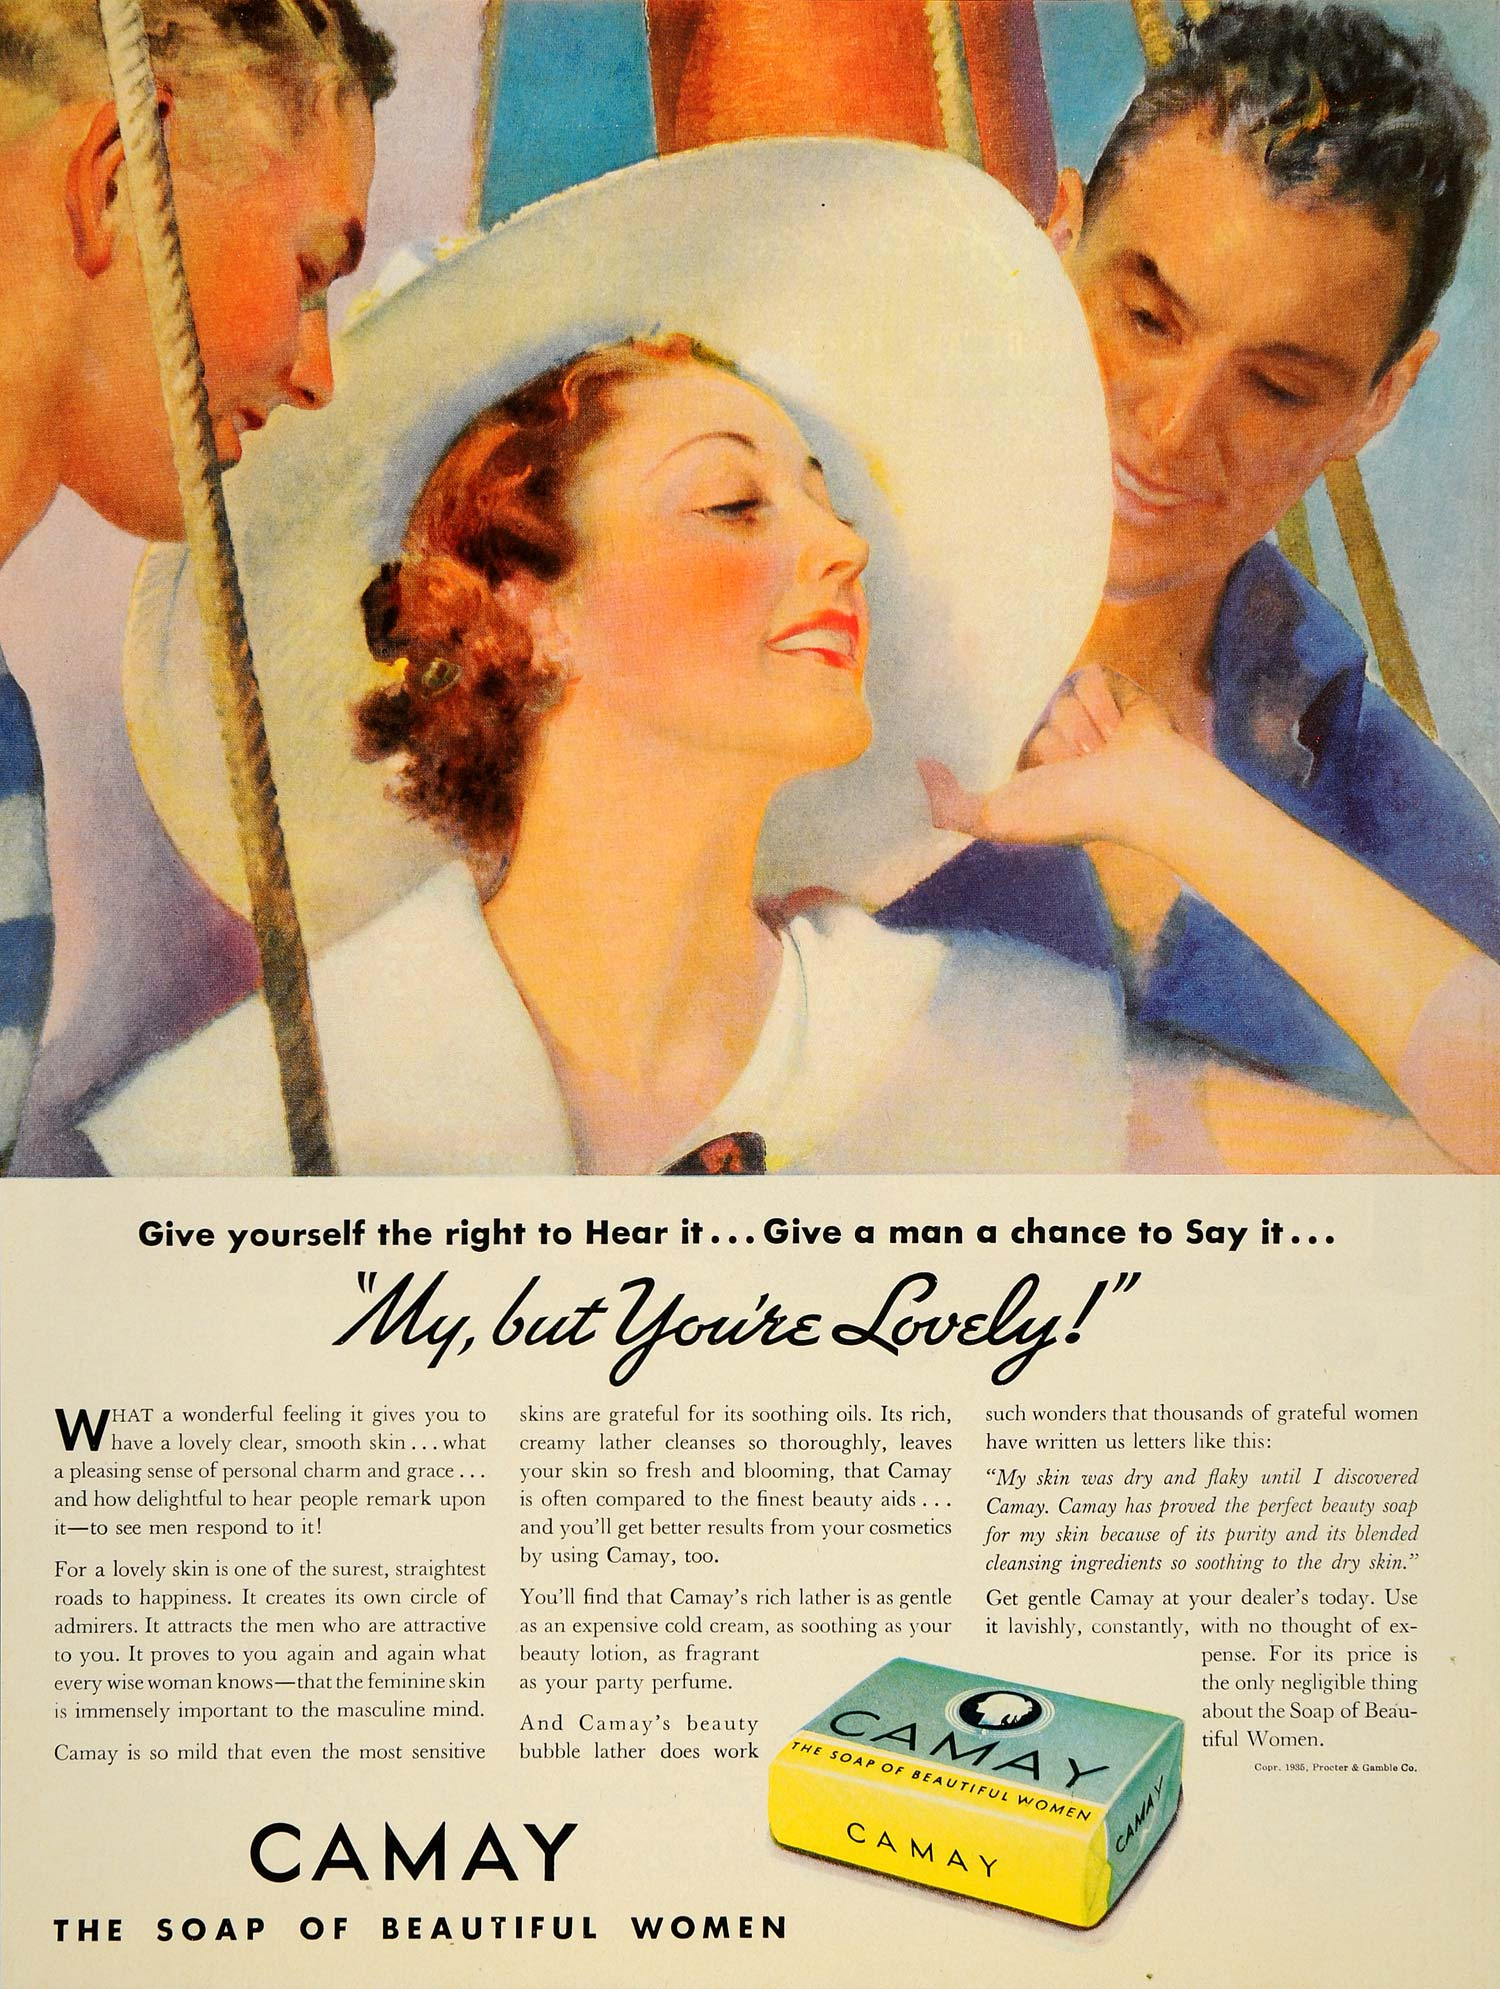 1935 Ad Camay Soap Women Skin Beauty Proctor Gamble - ORIGINAL ADVERTISING WH1